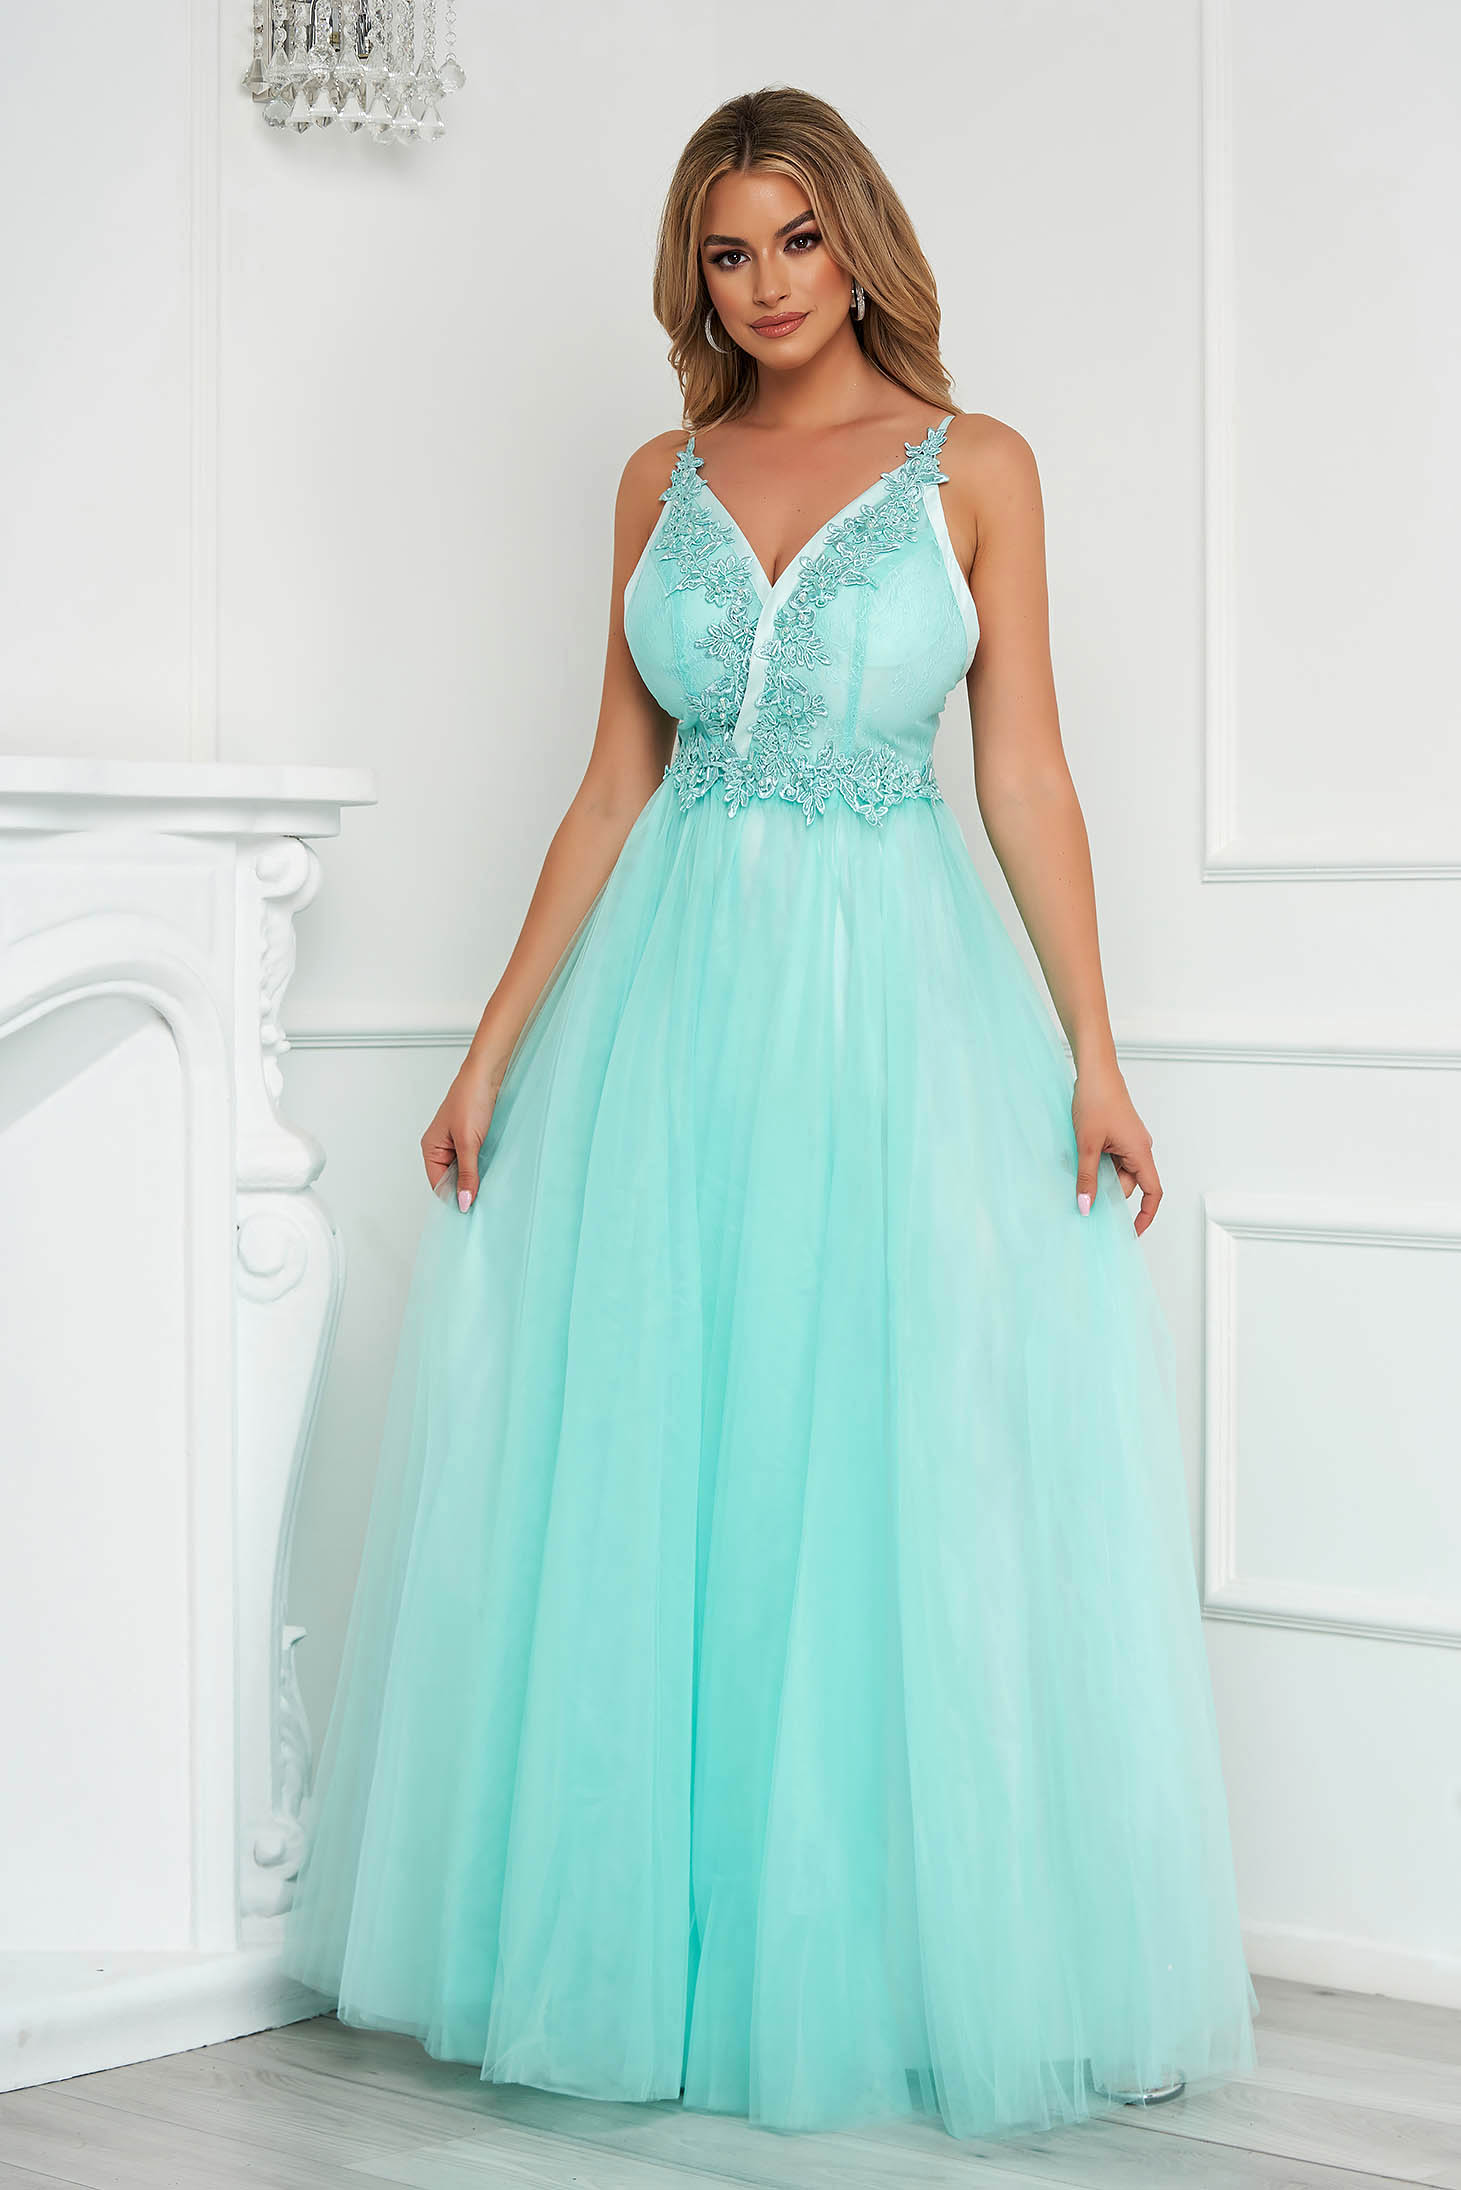 Mint dress long cloche from tulle adjustable straps with push-up cups occasional